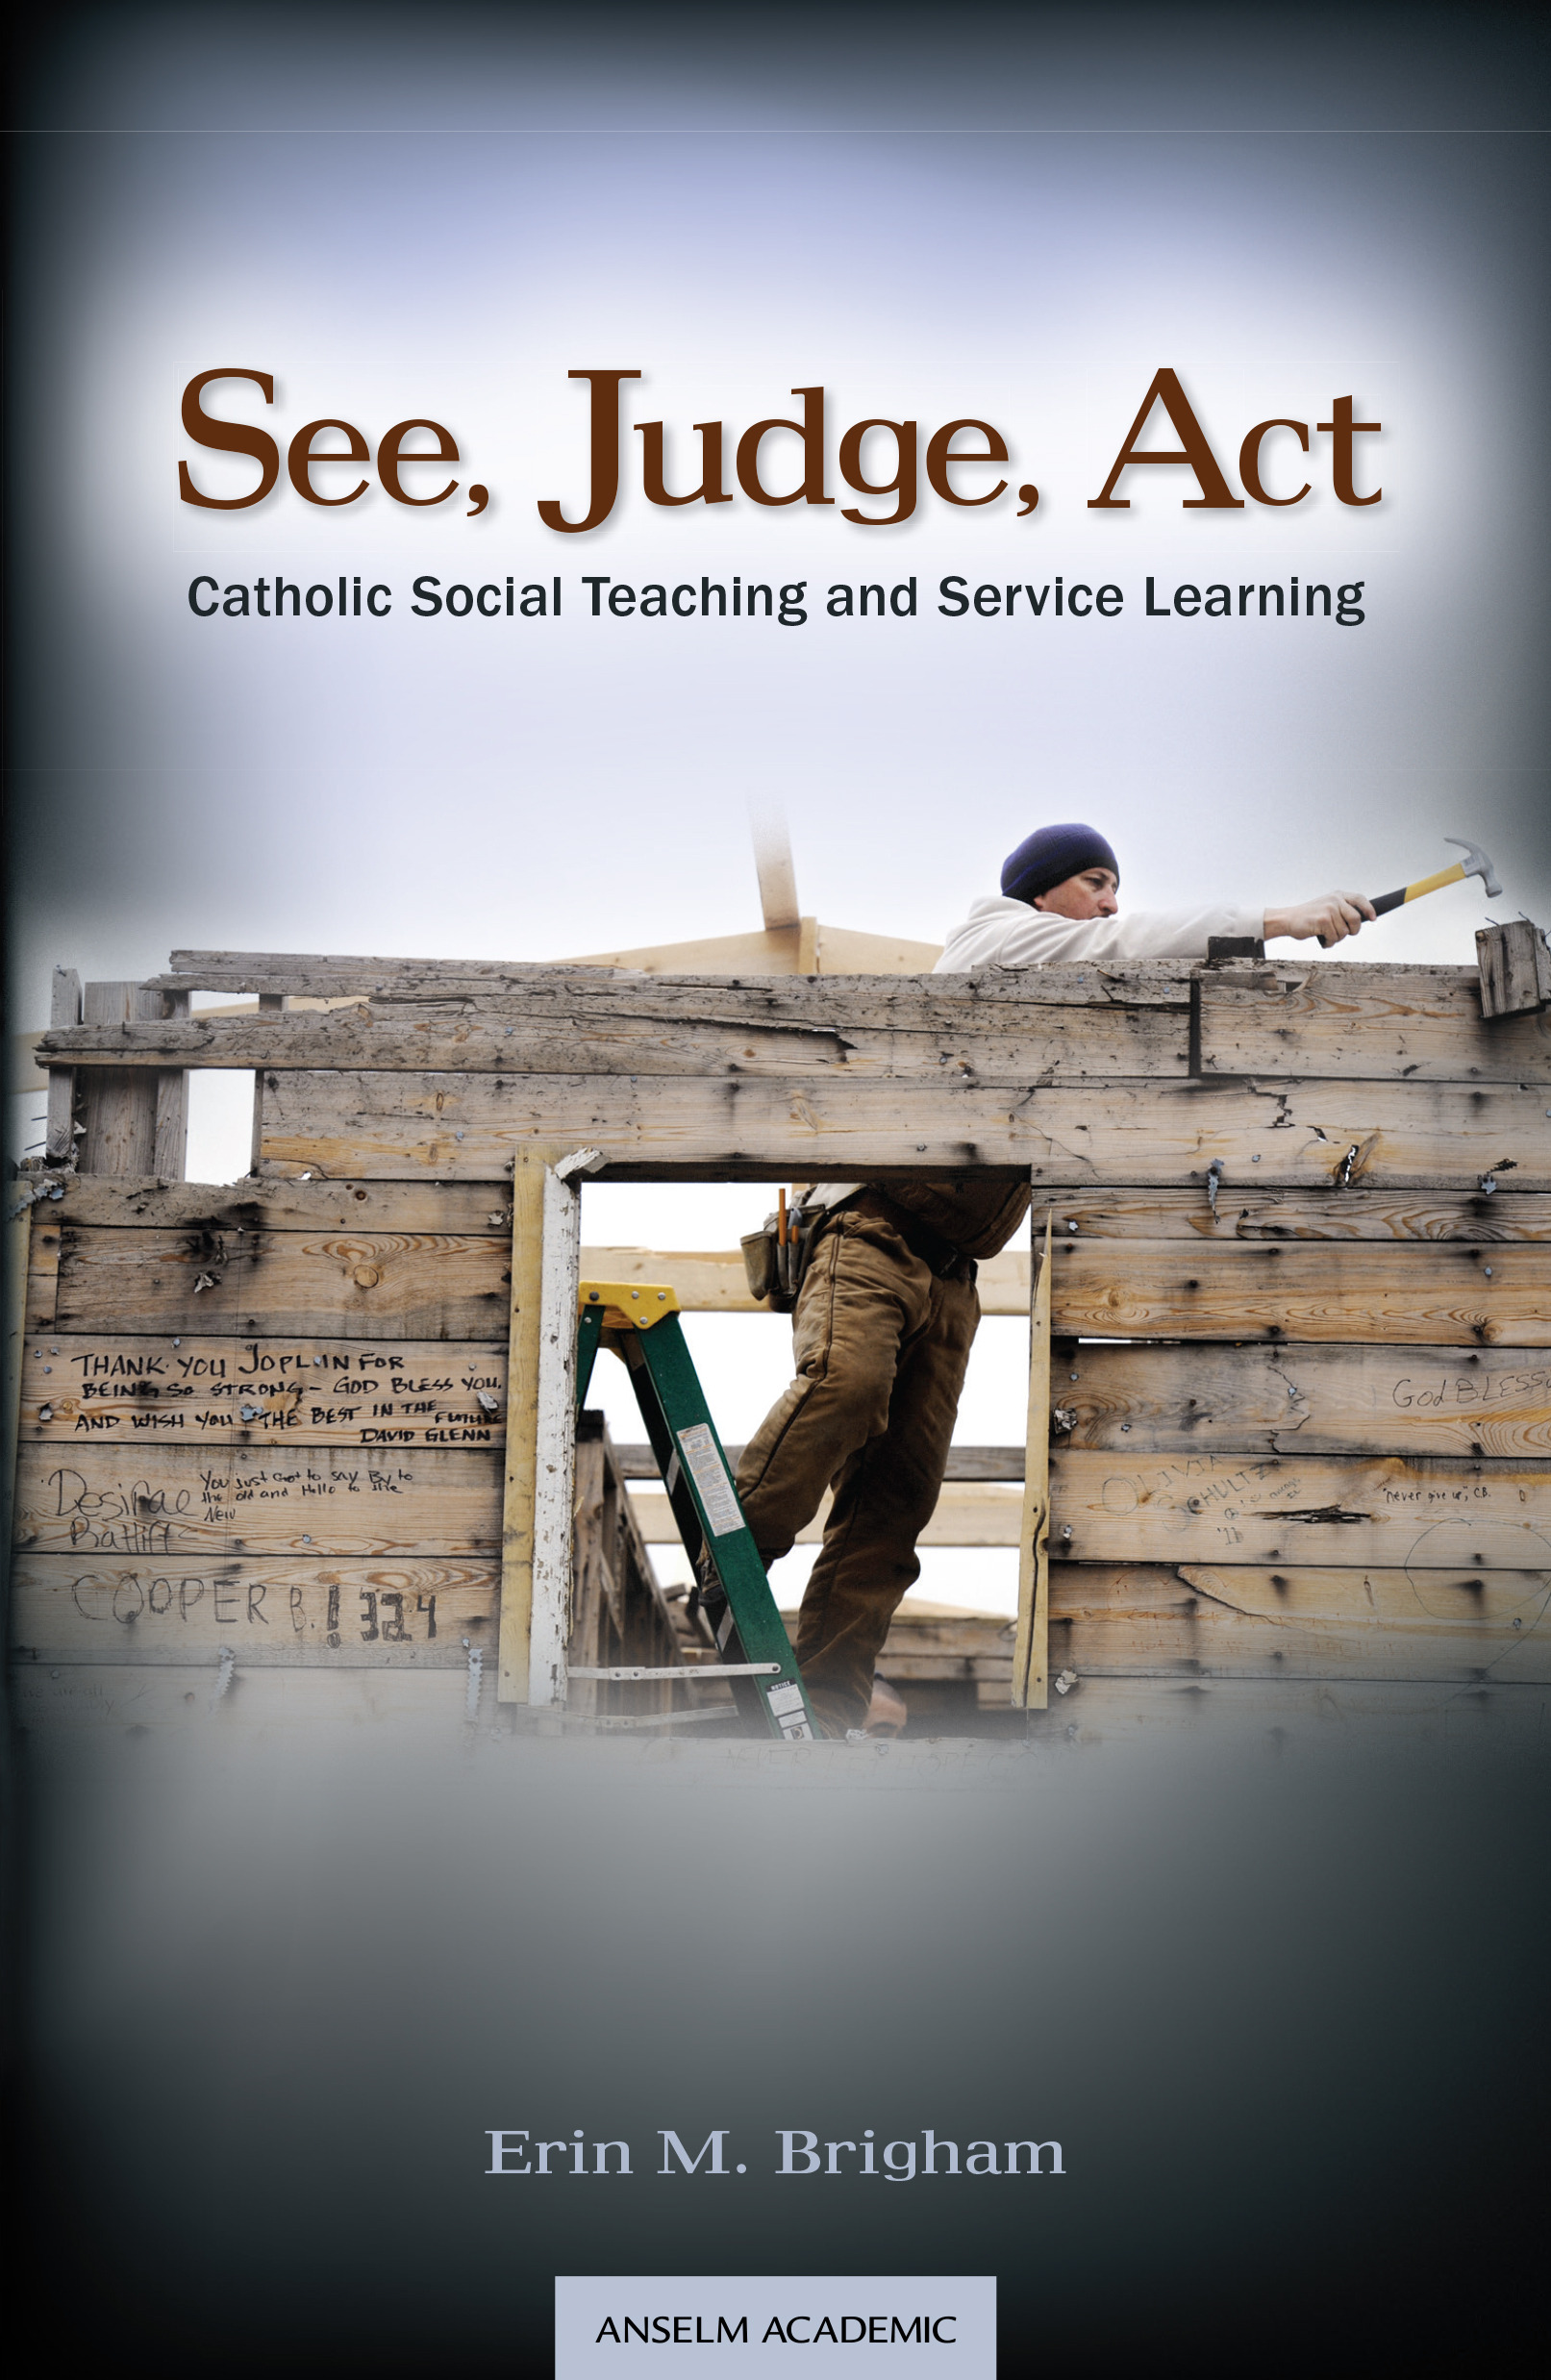 See, Judge, Act: Catholic Social Teaching and Service Learning - PDF